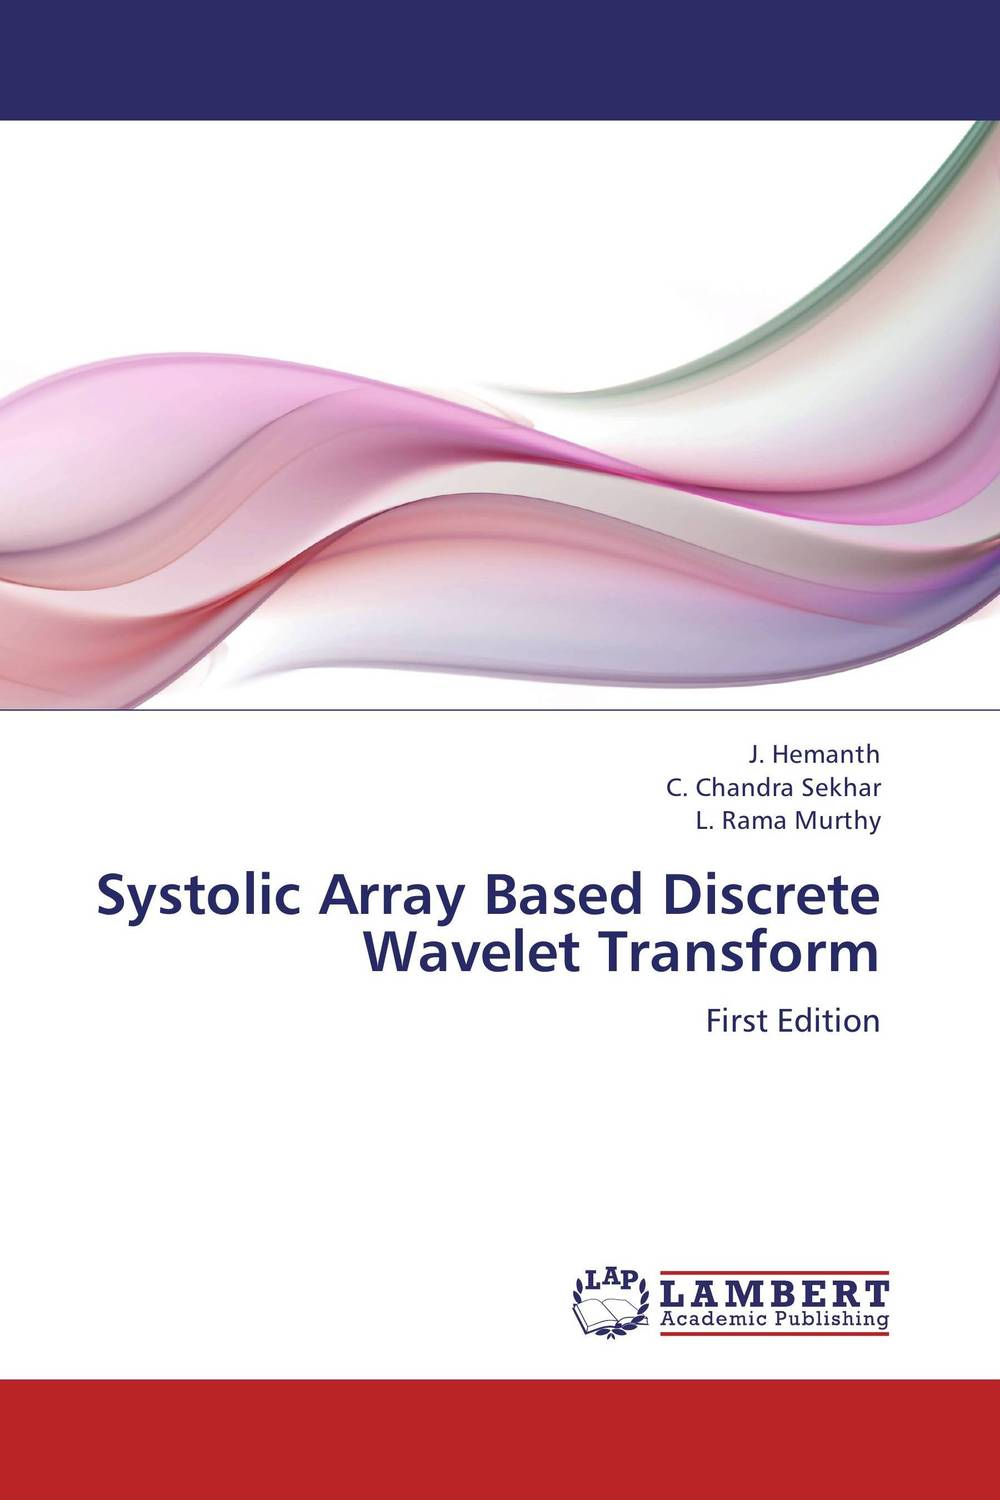 Systolic Array Based Discrete Wavelet Transform image compression using wavelet transform and other methods